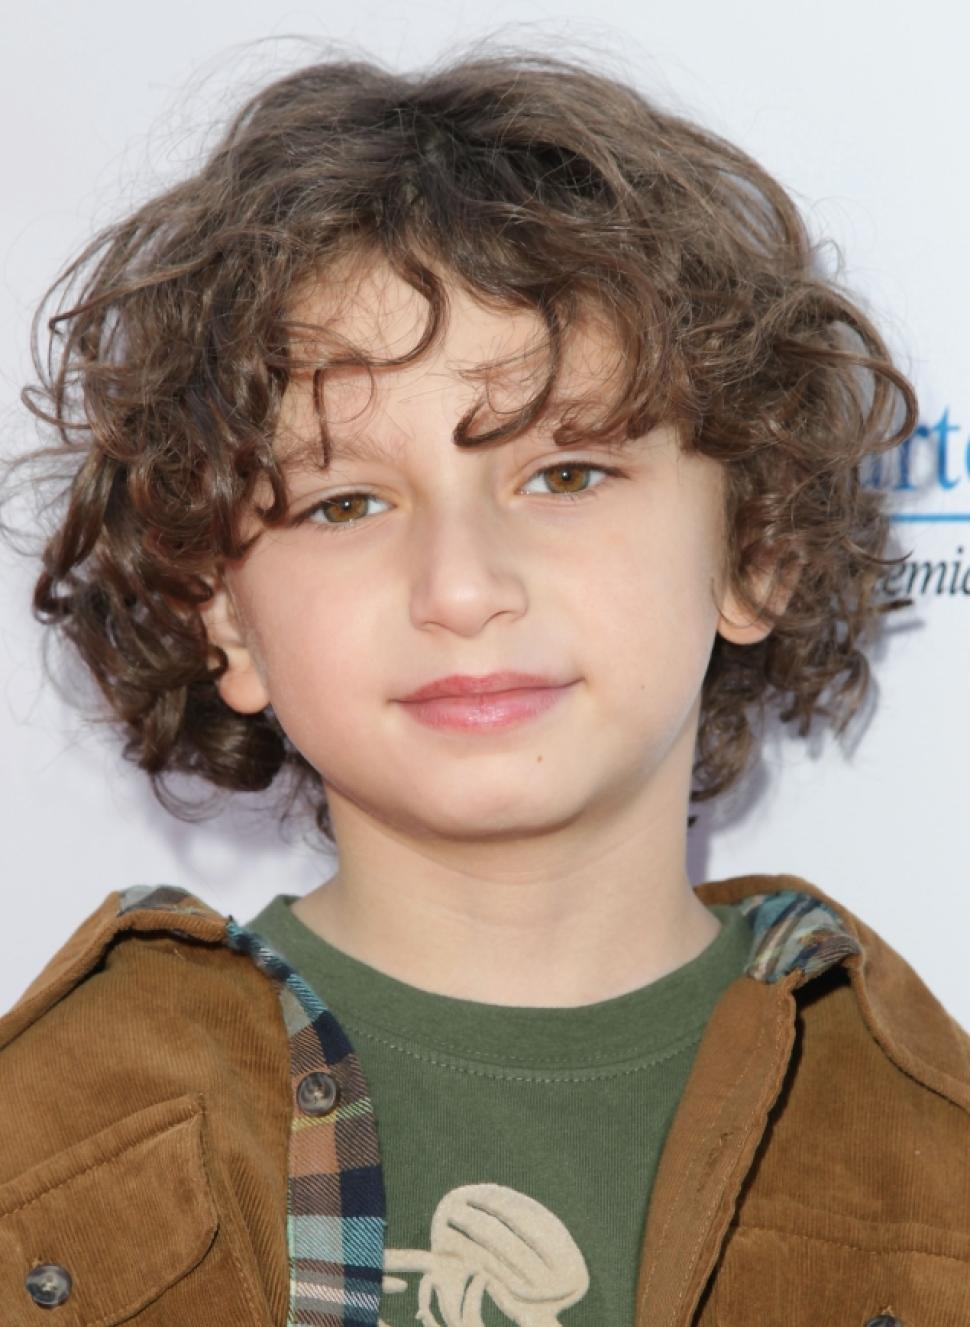 august maturo siblingsaugust maturo age, august maturo siblings, august maturo wikipedia, august maturo, august maturo instagram, august maturo wiki, august maturo parents, august maturo 2015, august maturo facebook, august maturo height, august maturo how i met your mother, august maturo brother, august maturo and mckenna grace, august maturo twitter, august maturo net worth, august maturo girlfriend, august maturo singing, august maturo and rowan blanchard, august maturo girl meets world, august maturo commercial